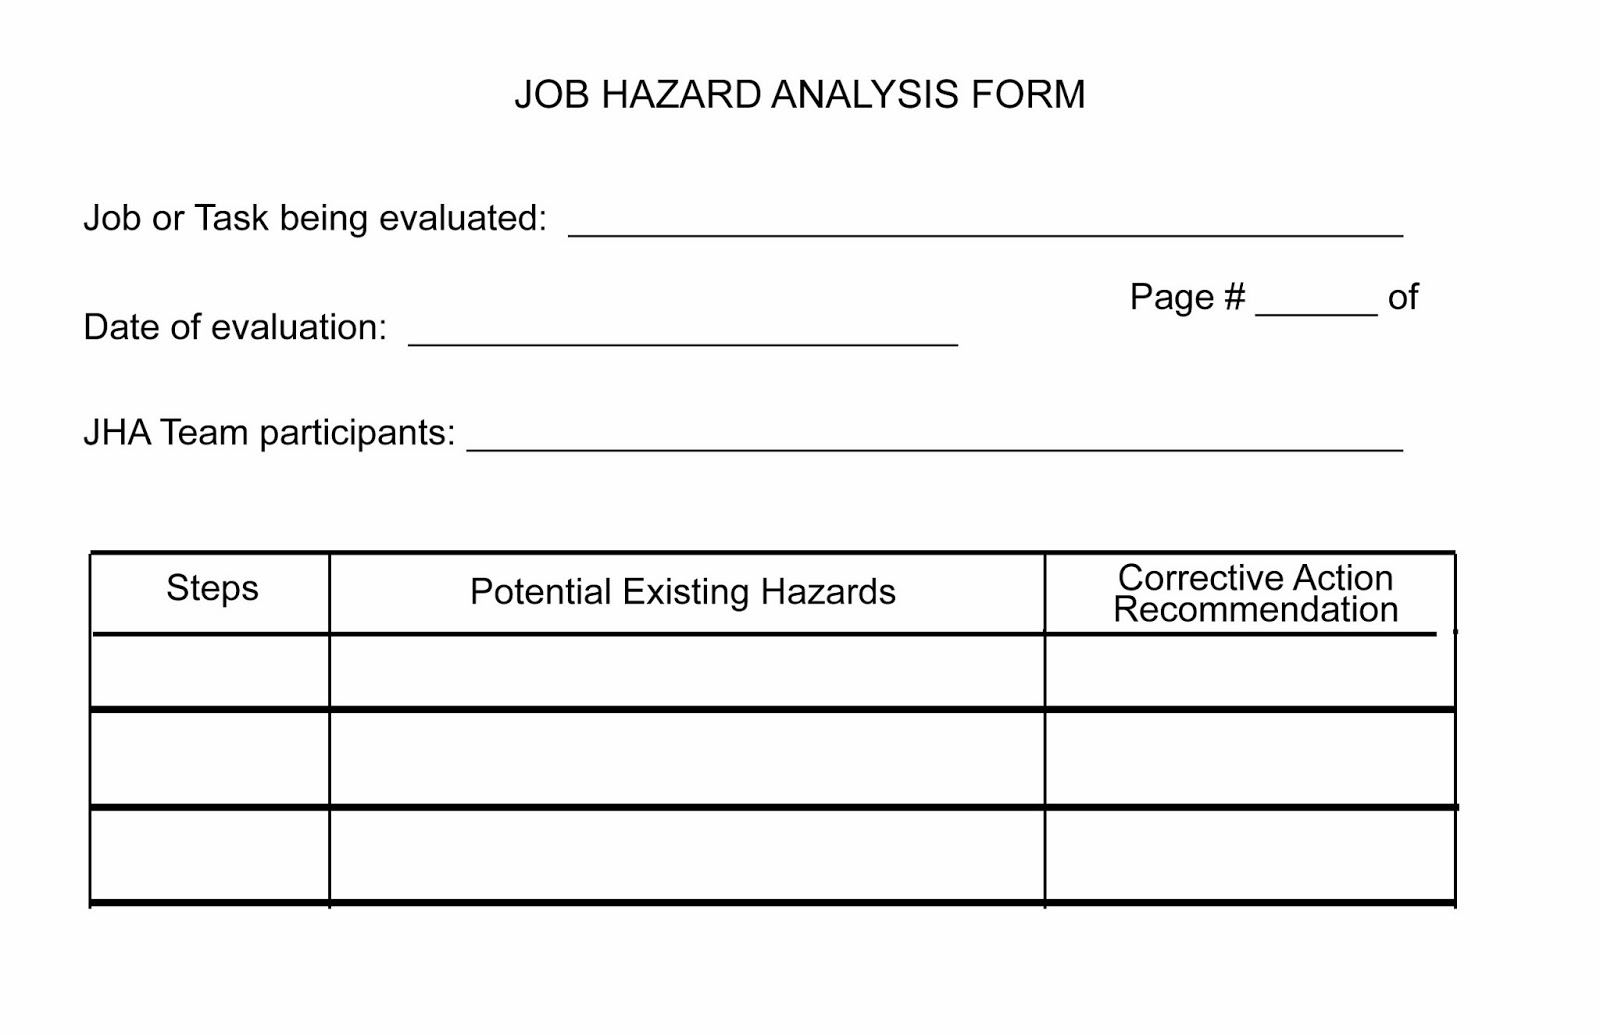 Resume Job Analysis Questionnaire Template – Job Safety Analysis Form Template